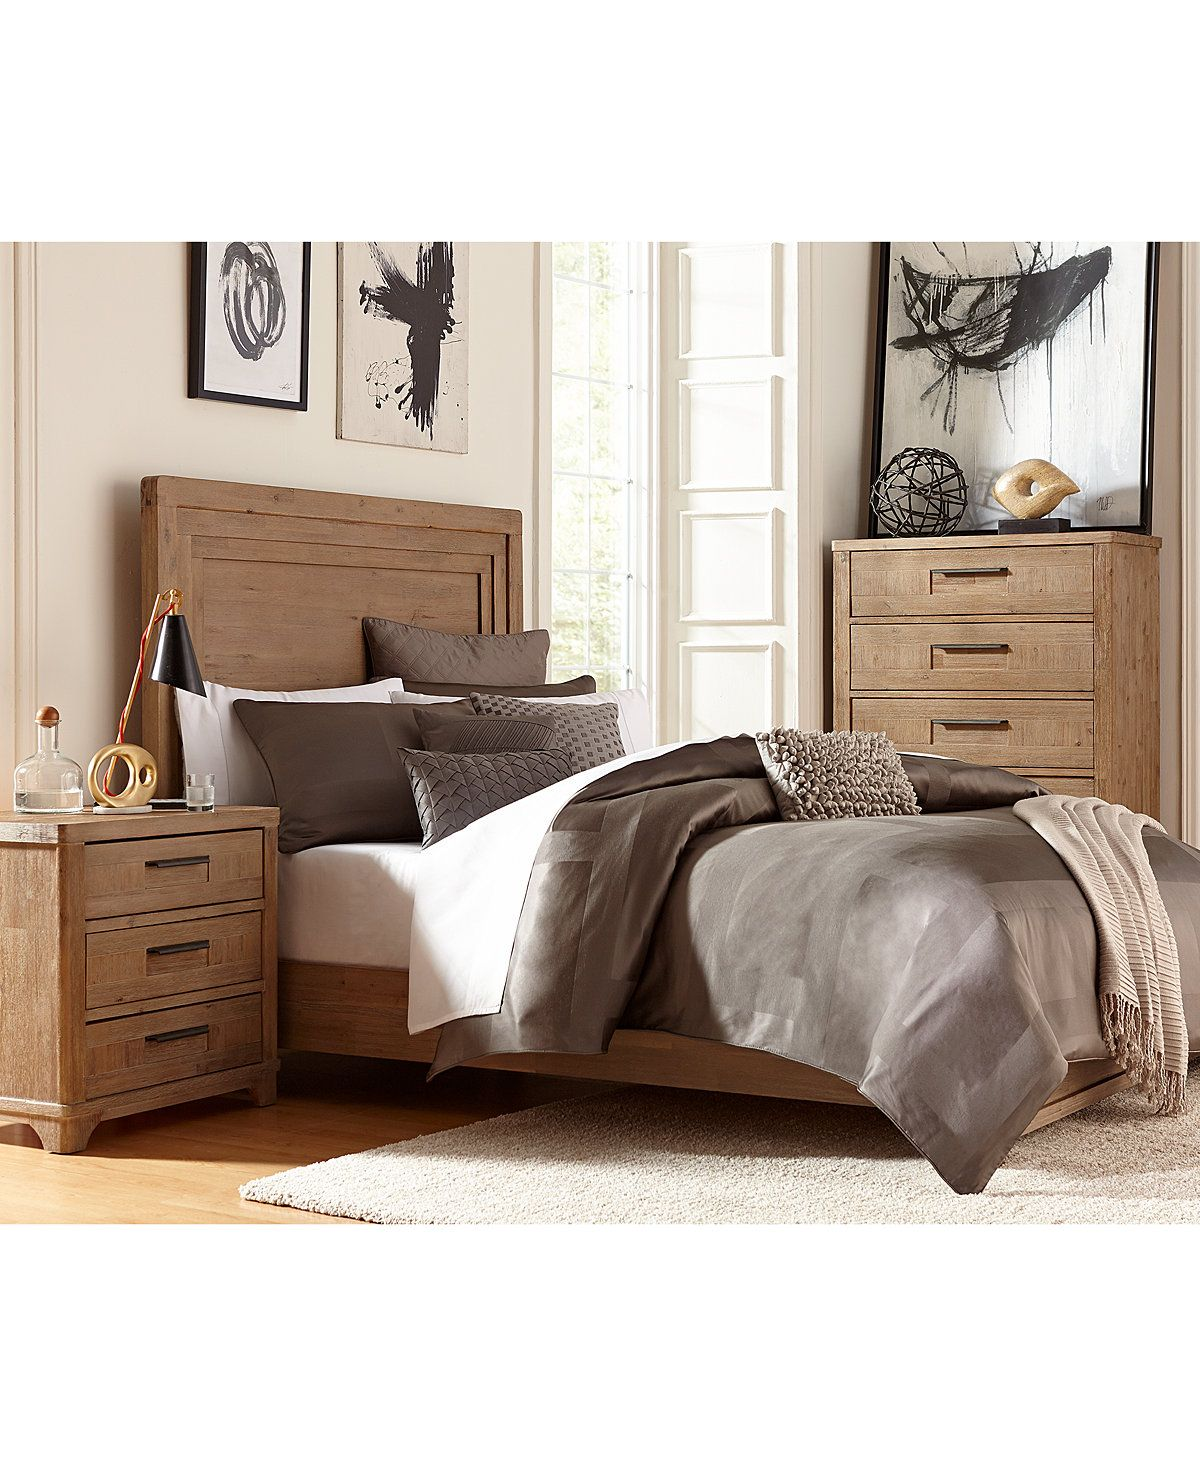 Summerside 3 Piece California King Bedroom Furniture Set With Dresser    Furniture   Macyu0027s